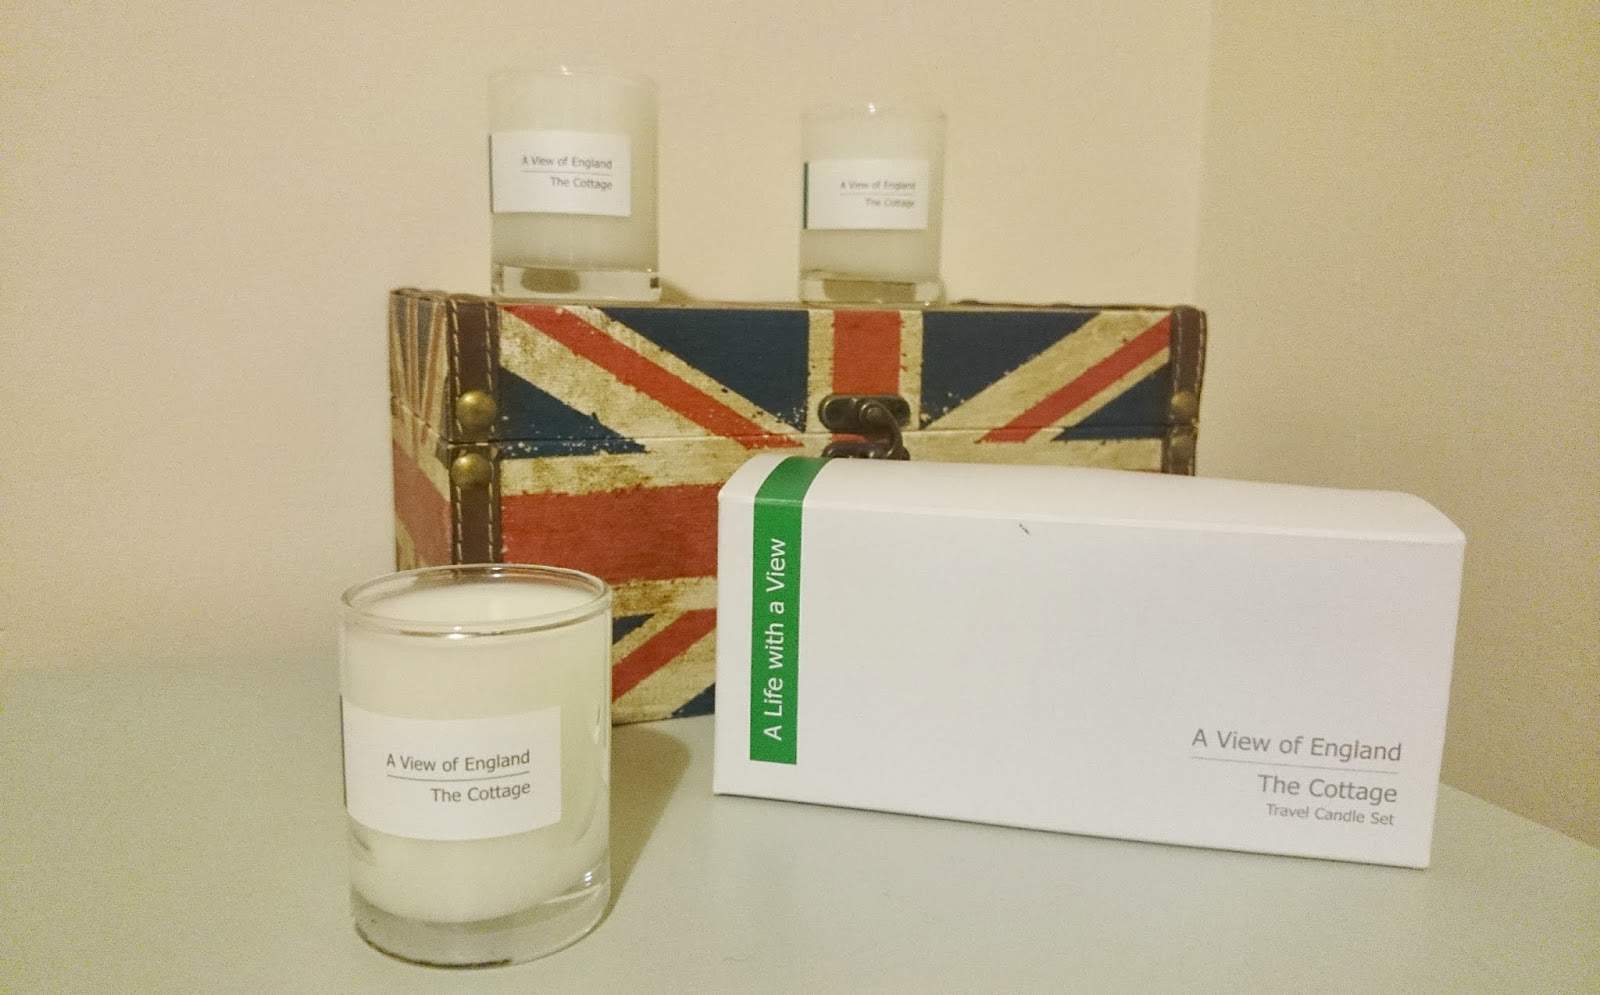 A View of England - The Cottage Travel Candle Set